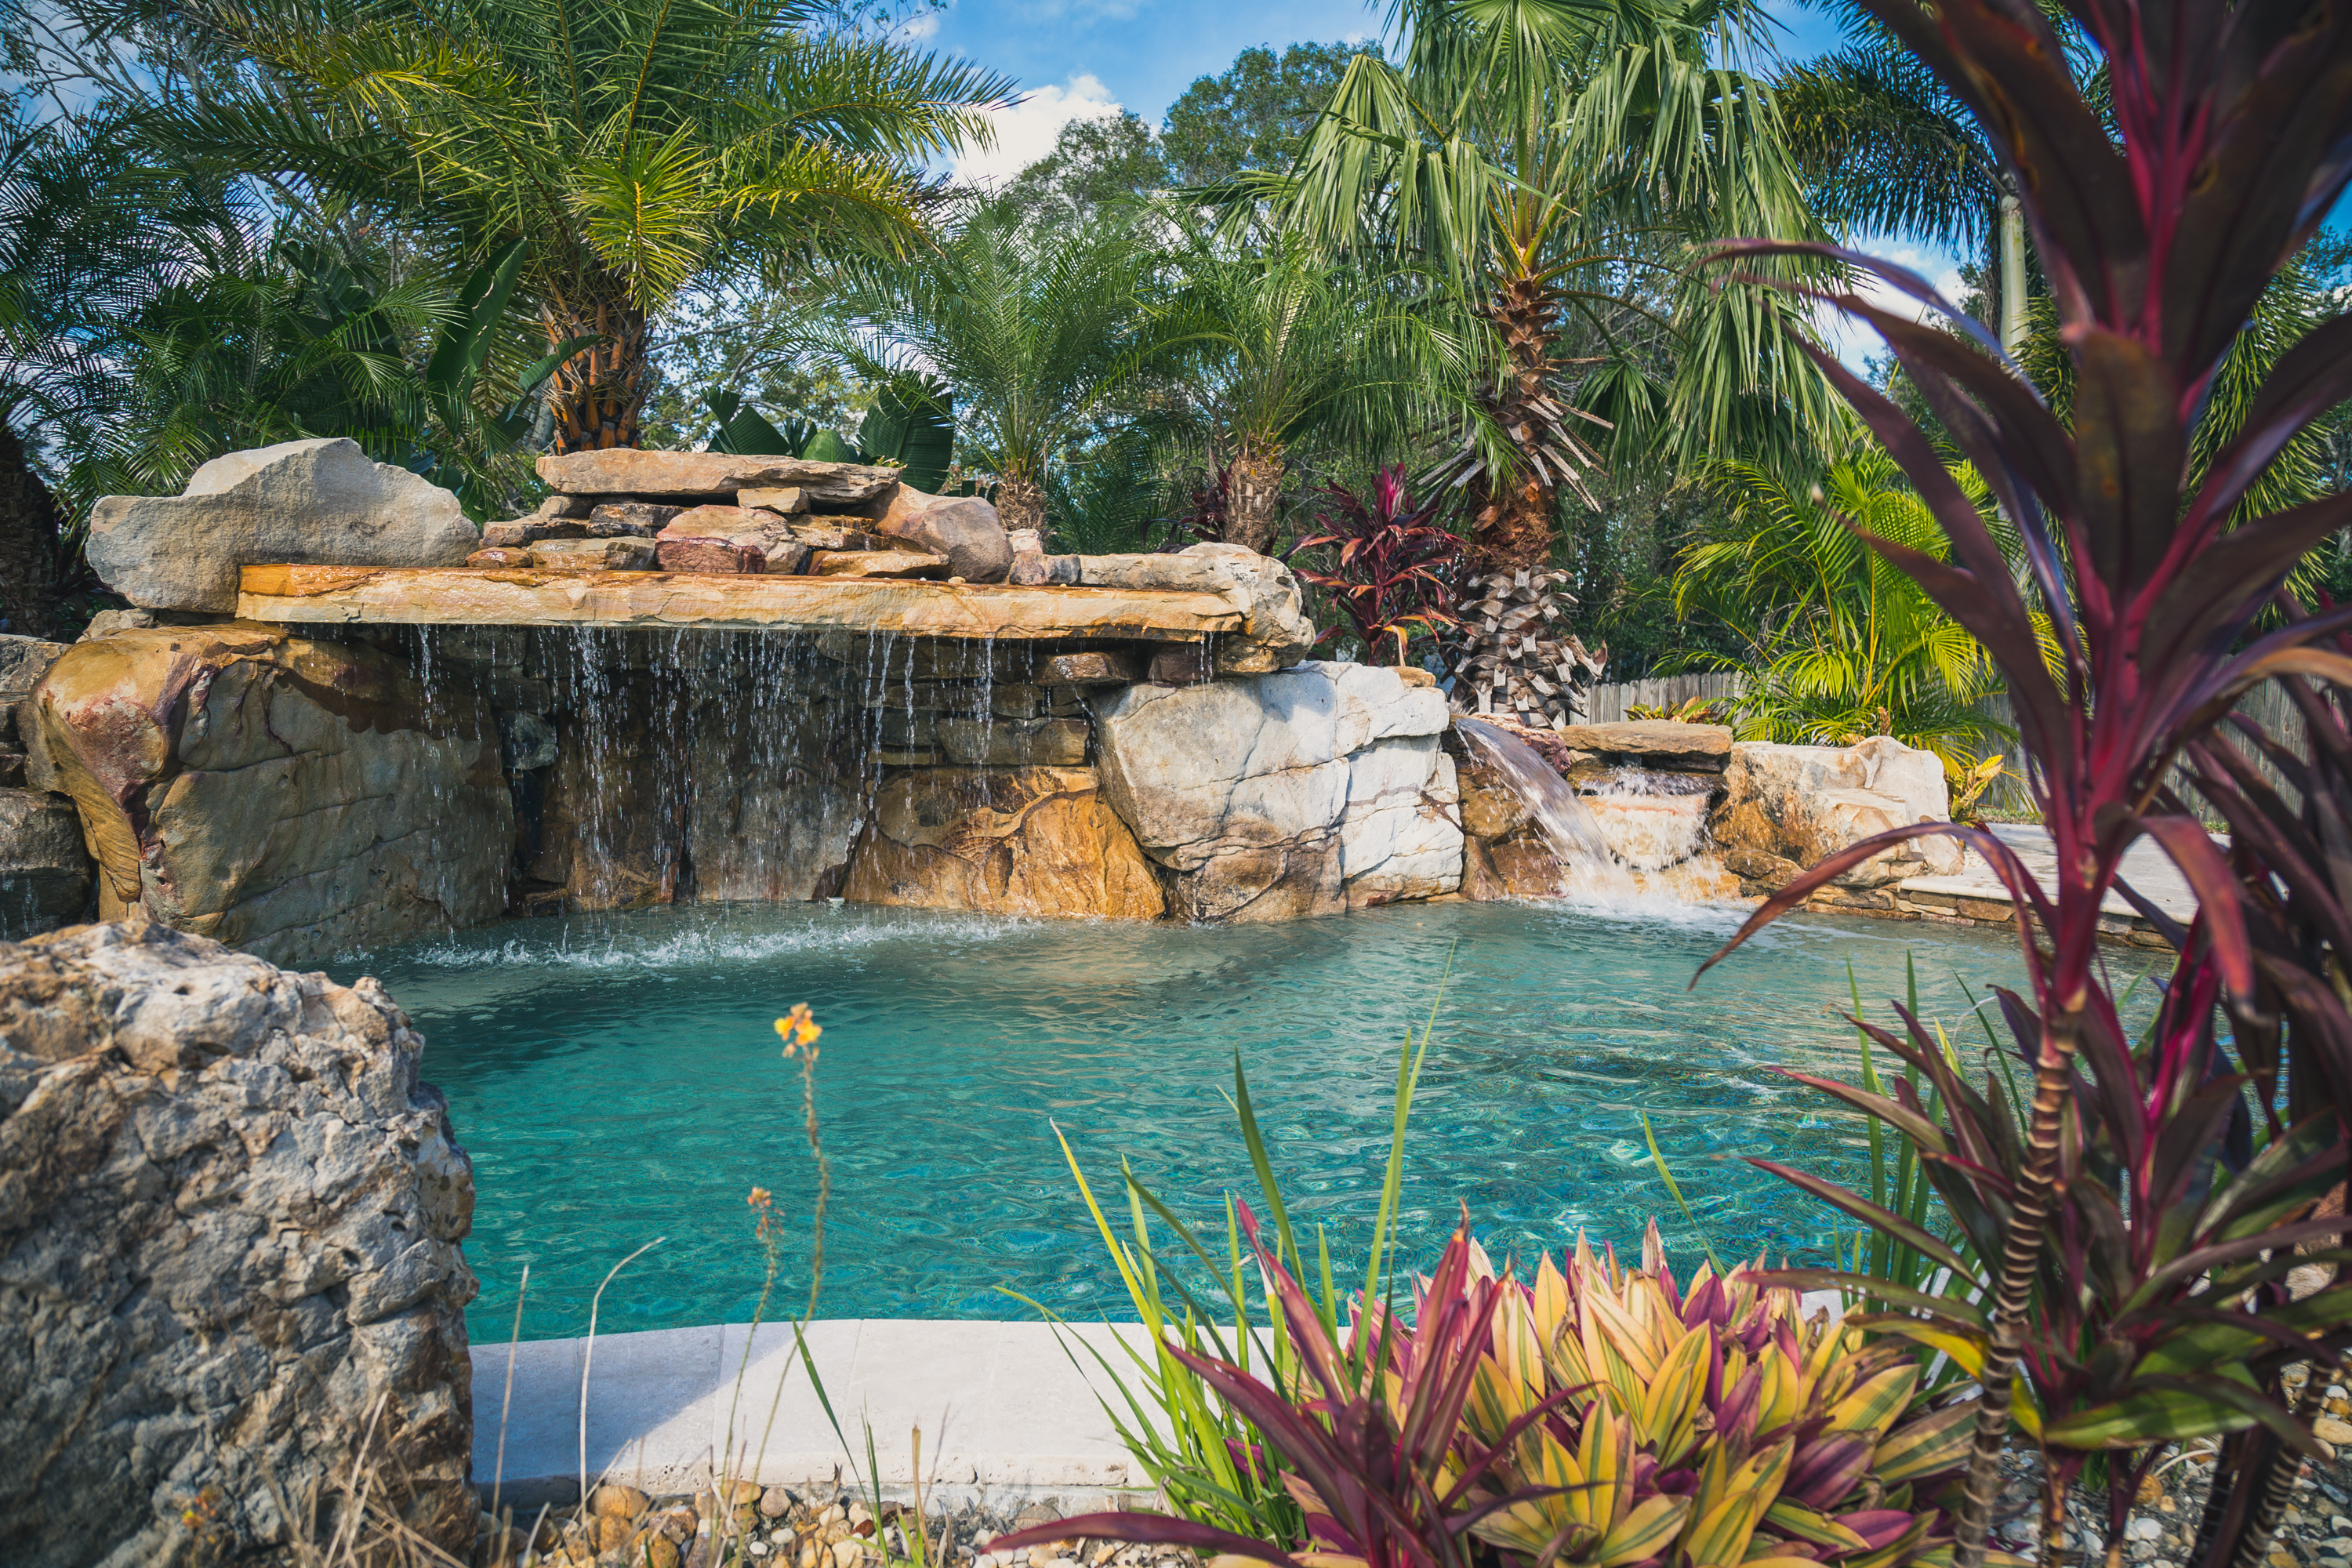 Project lagoon paradise pools by design for Pools by design